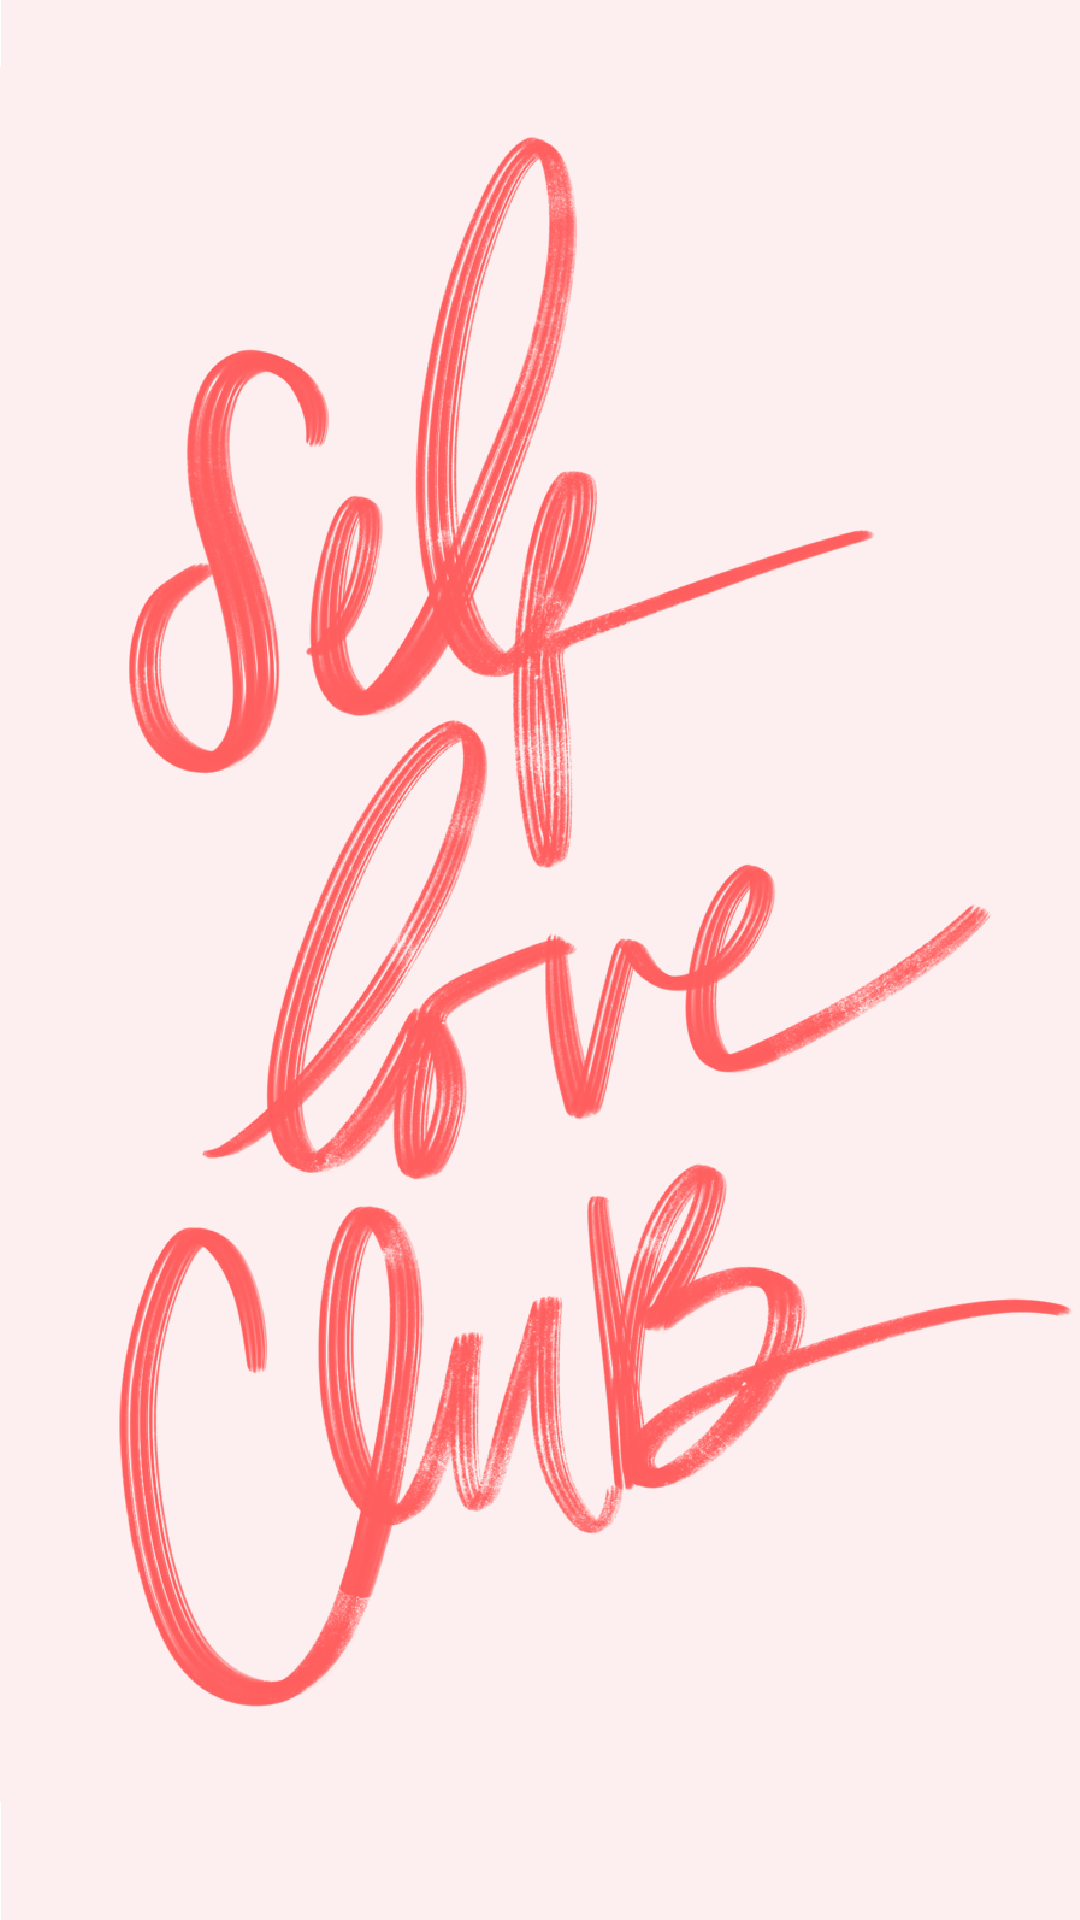 Self Love Wallpapers Arrière Plans Iphone écran Et Avoir